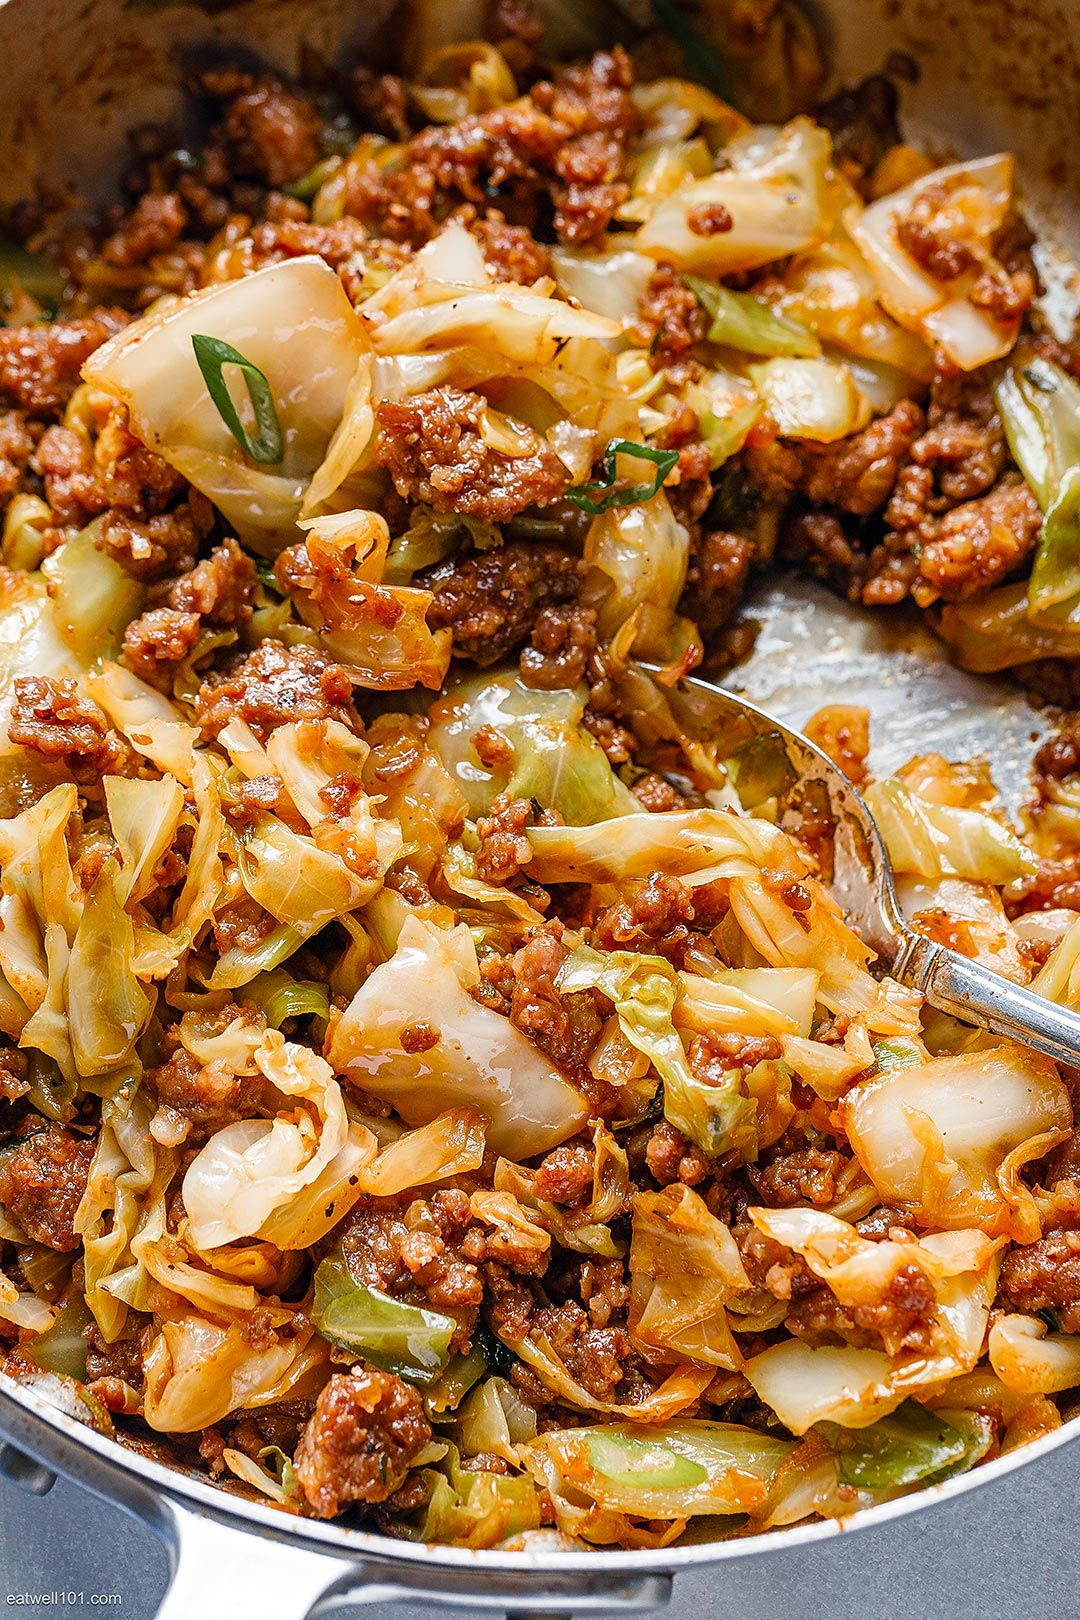 Fried Cabbage Recipe with Sausage